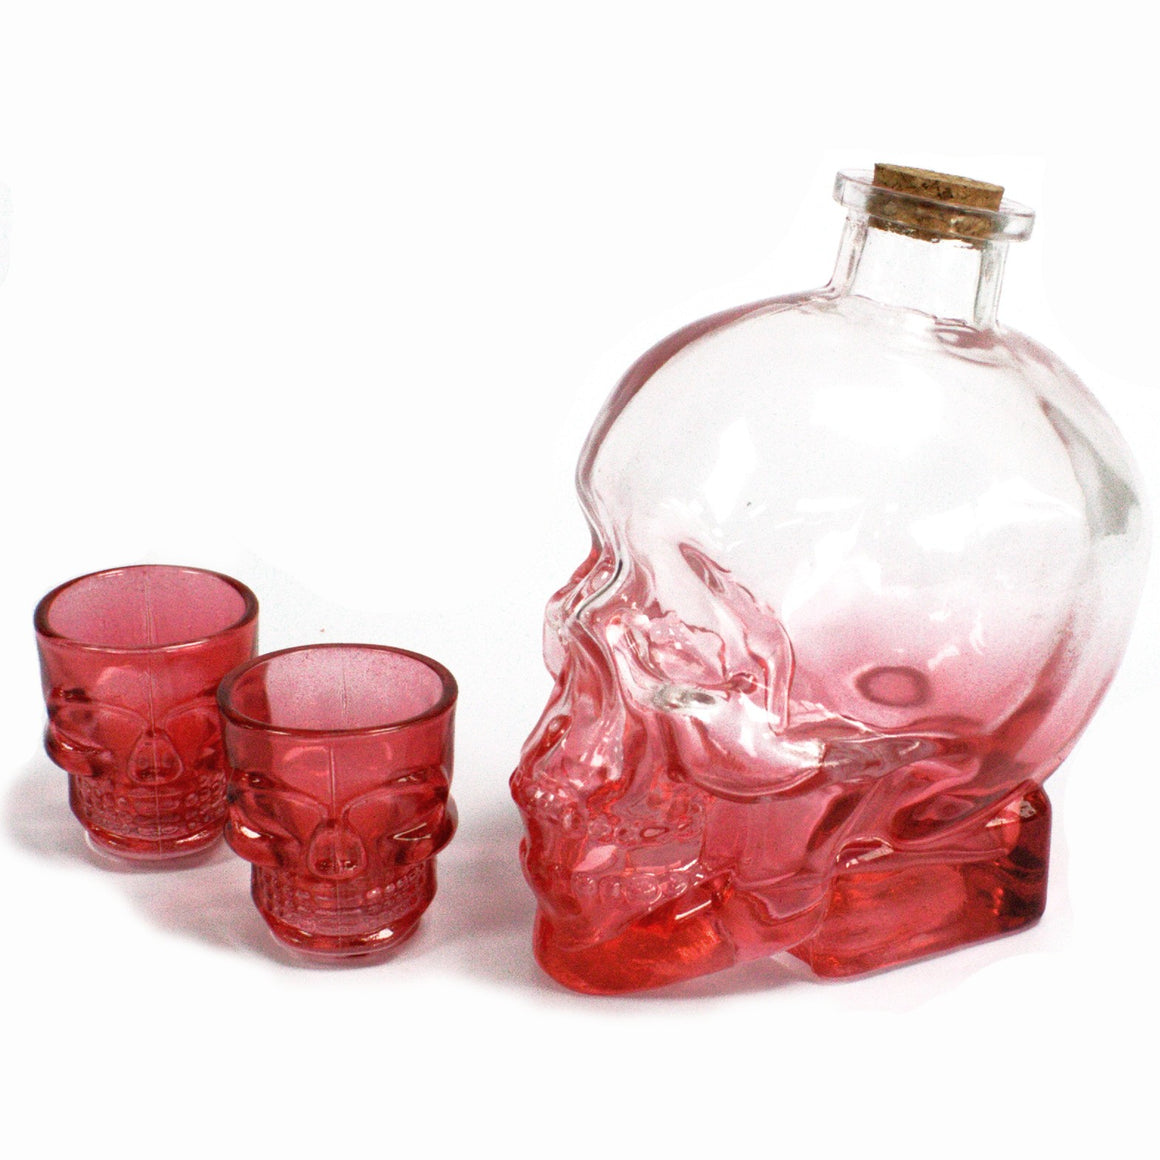 Demon Drink Set - With a Red Head